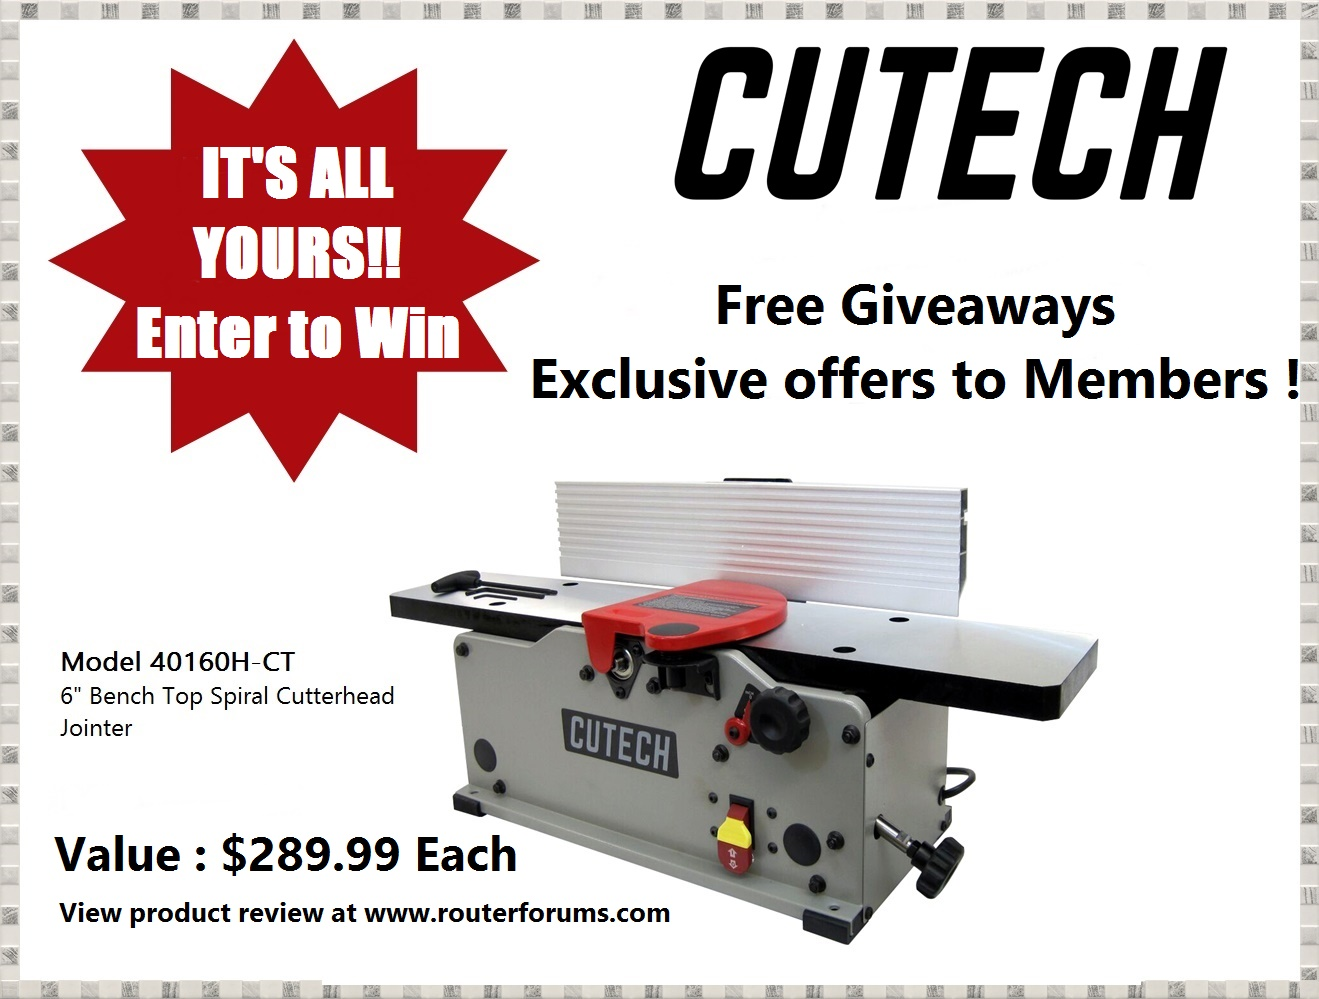 GIVEAWAY! Enter To Win New Cutech Bench Top Jointer-free-giveaway-jointer.jpg